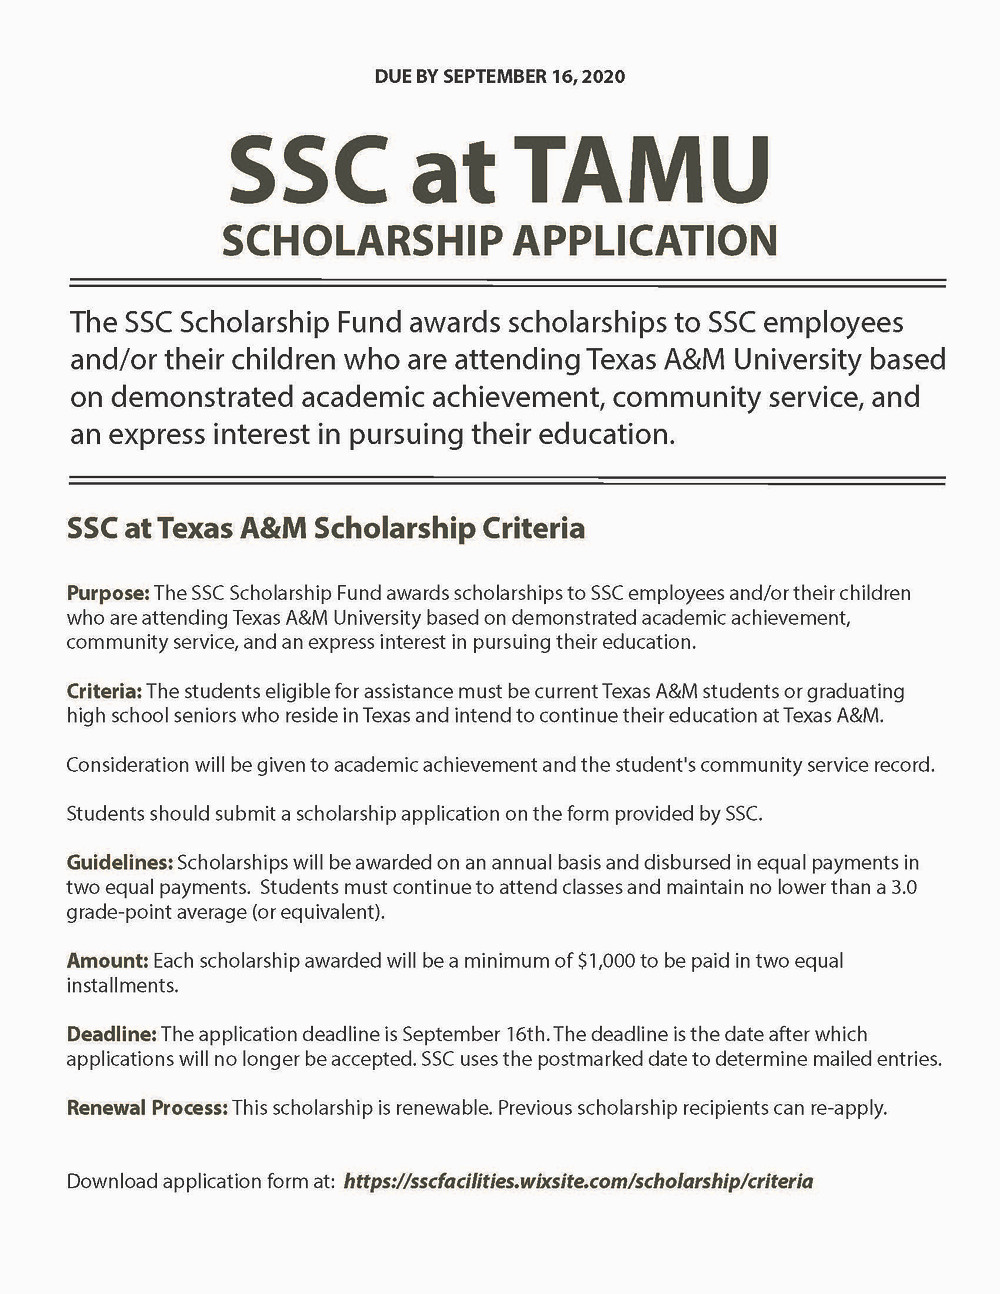 SSC AT TAMU SCHOLARSHIP APPLICATION